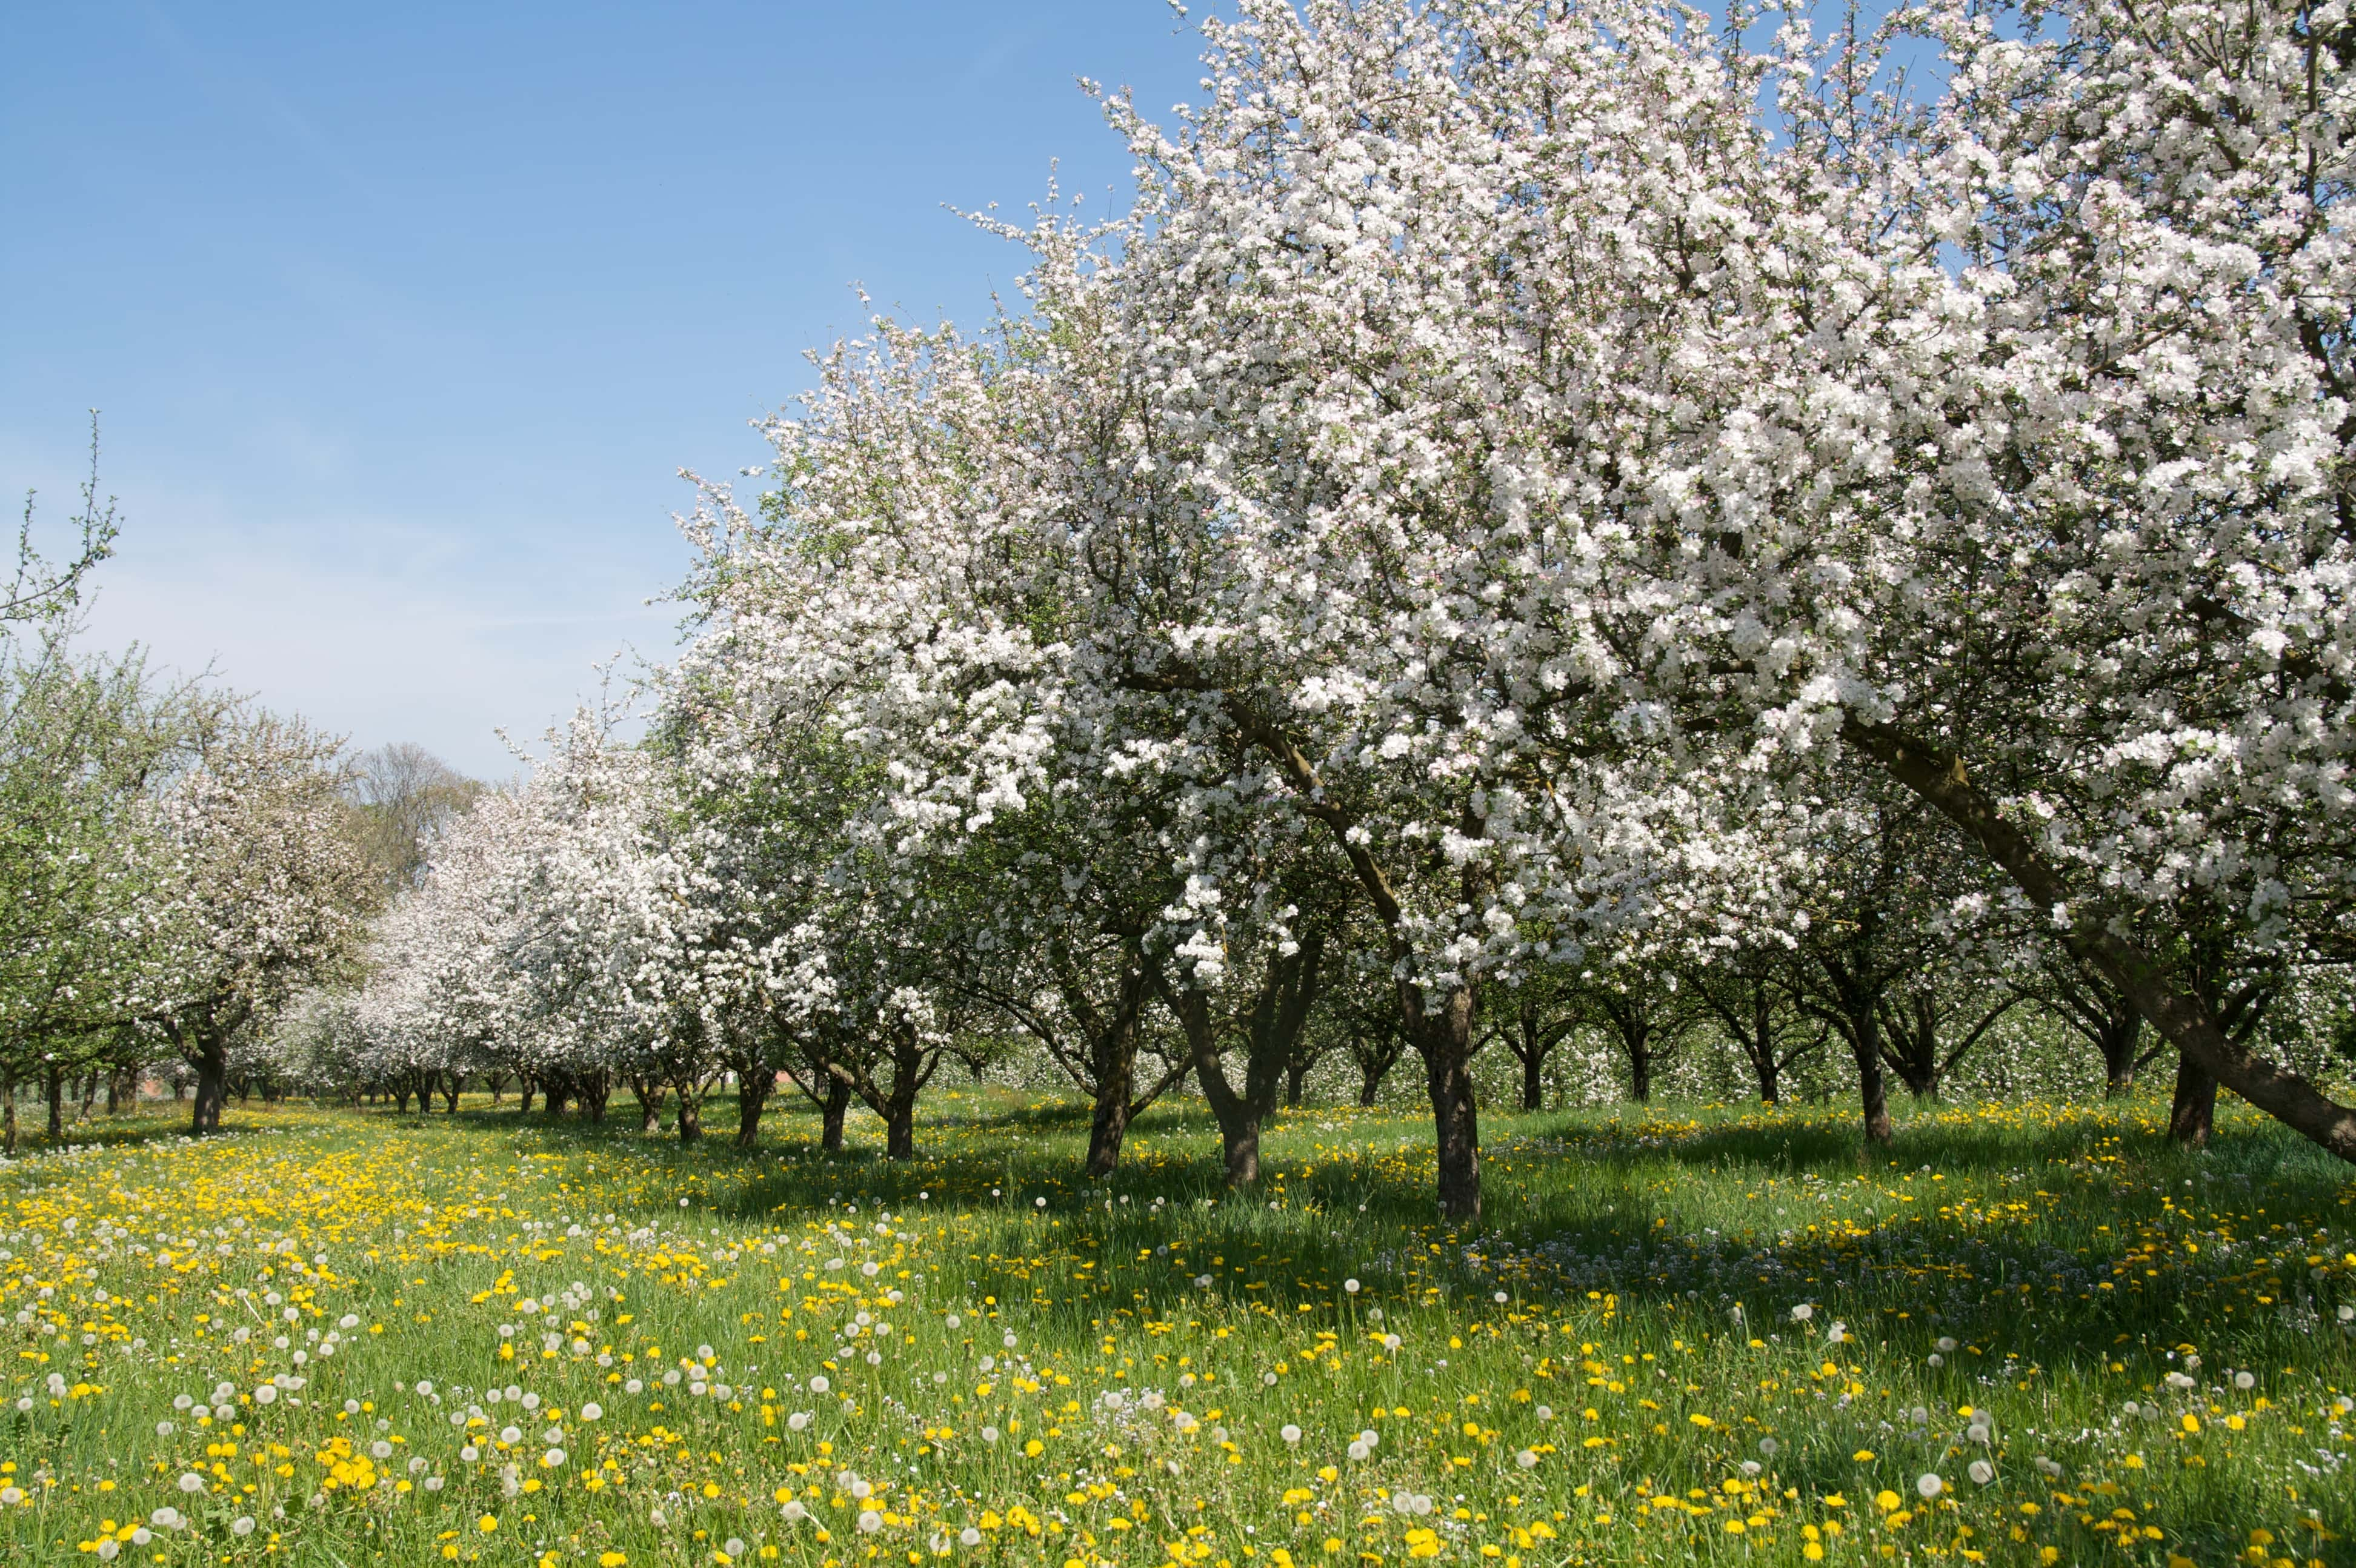 Orchard with blossoming apple trees in spring time. Thurgau, Switzerland. © Karsten Risseeuw